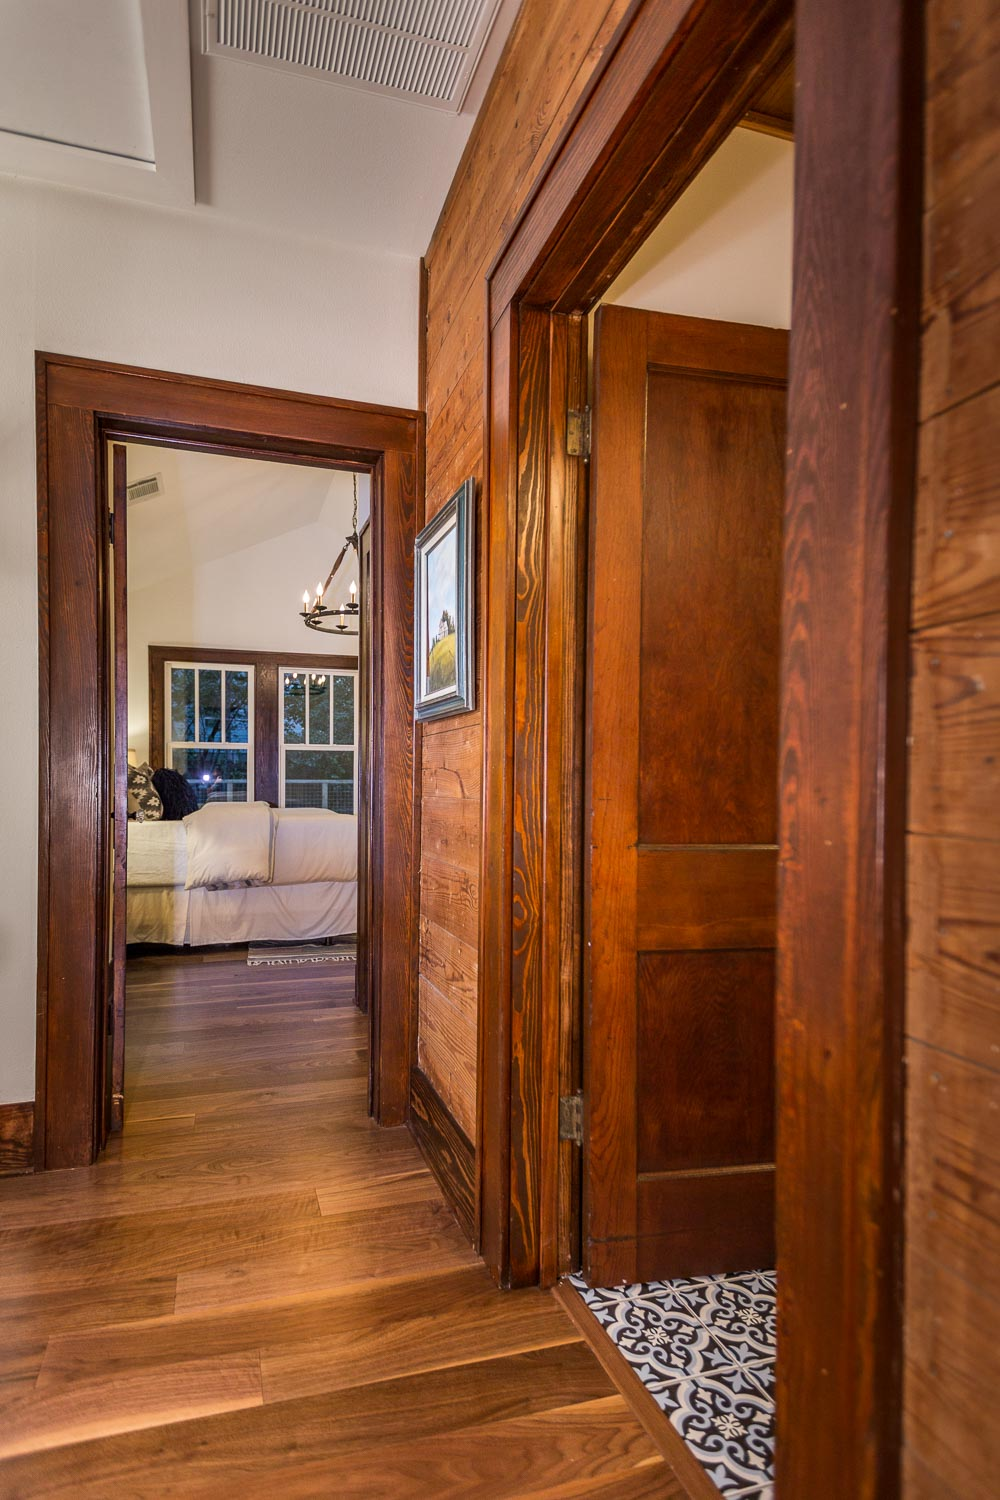 The hallway is one of the most interesting areas of the Austin bungalow. The original shiplap and trim is showcased. My favorite flea market painting hangs in the hallway and brings all the colors together.